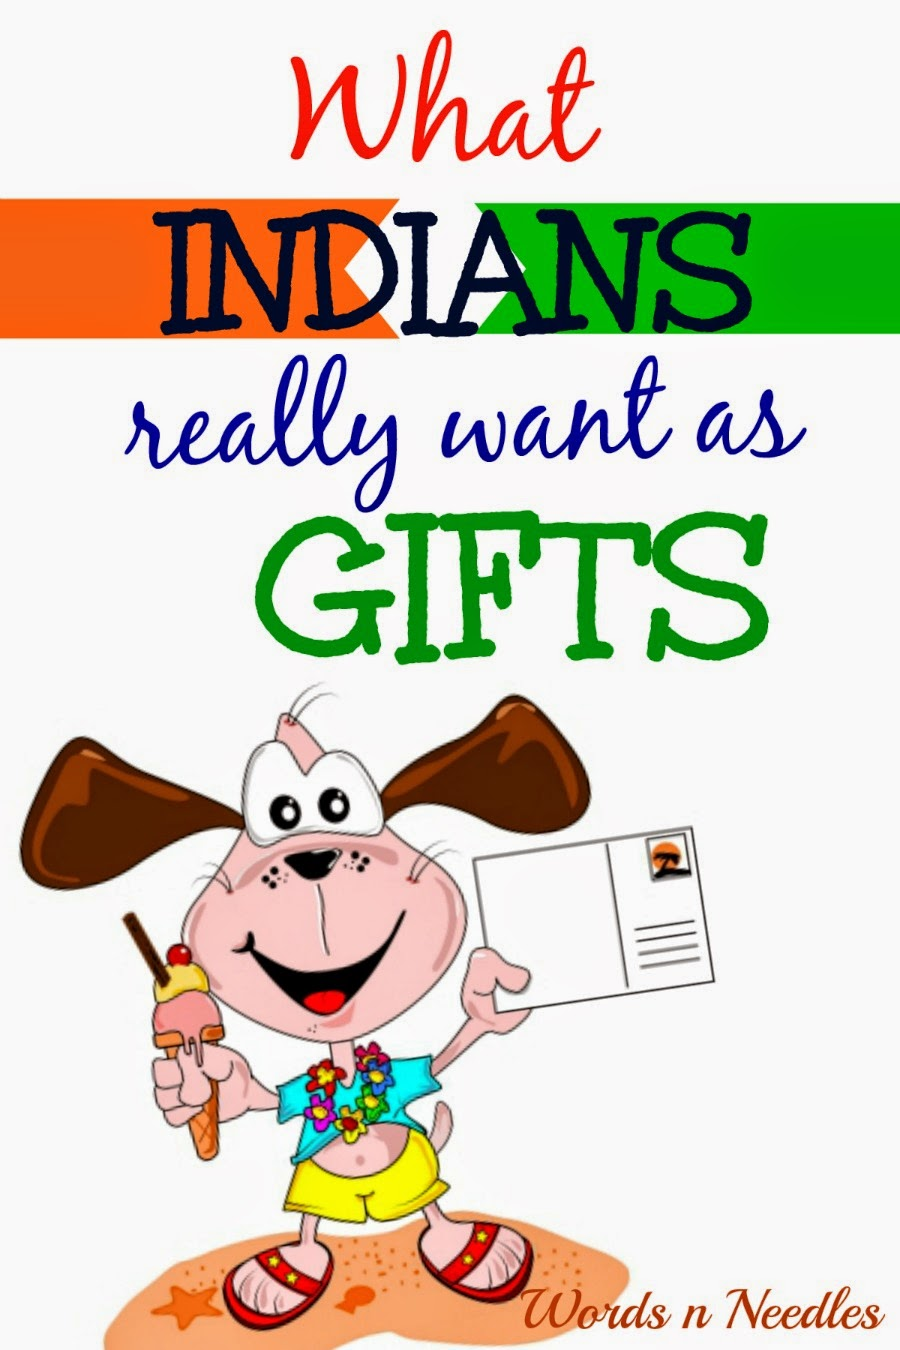 expat stories NRI indians gifts